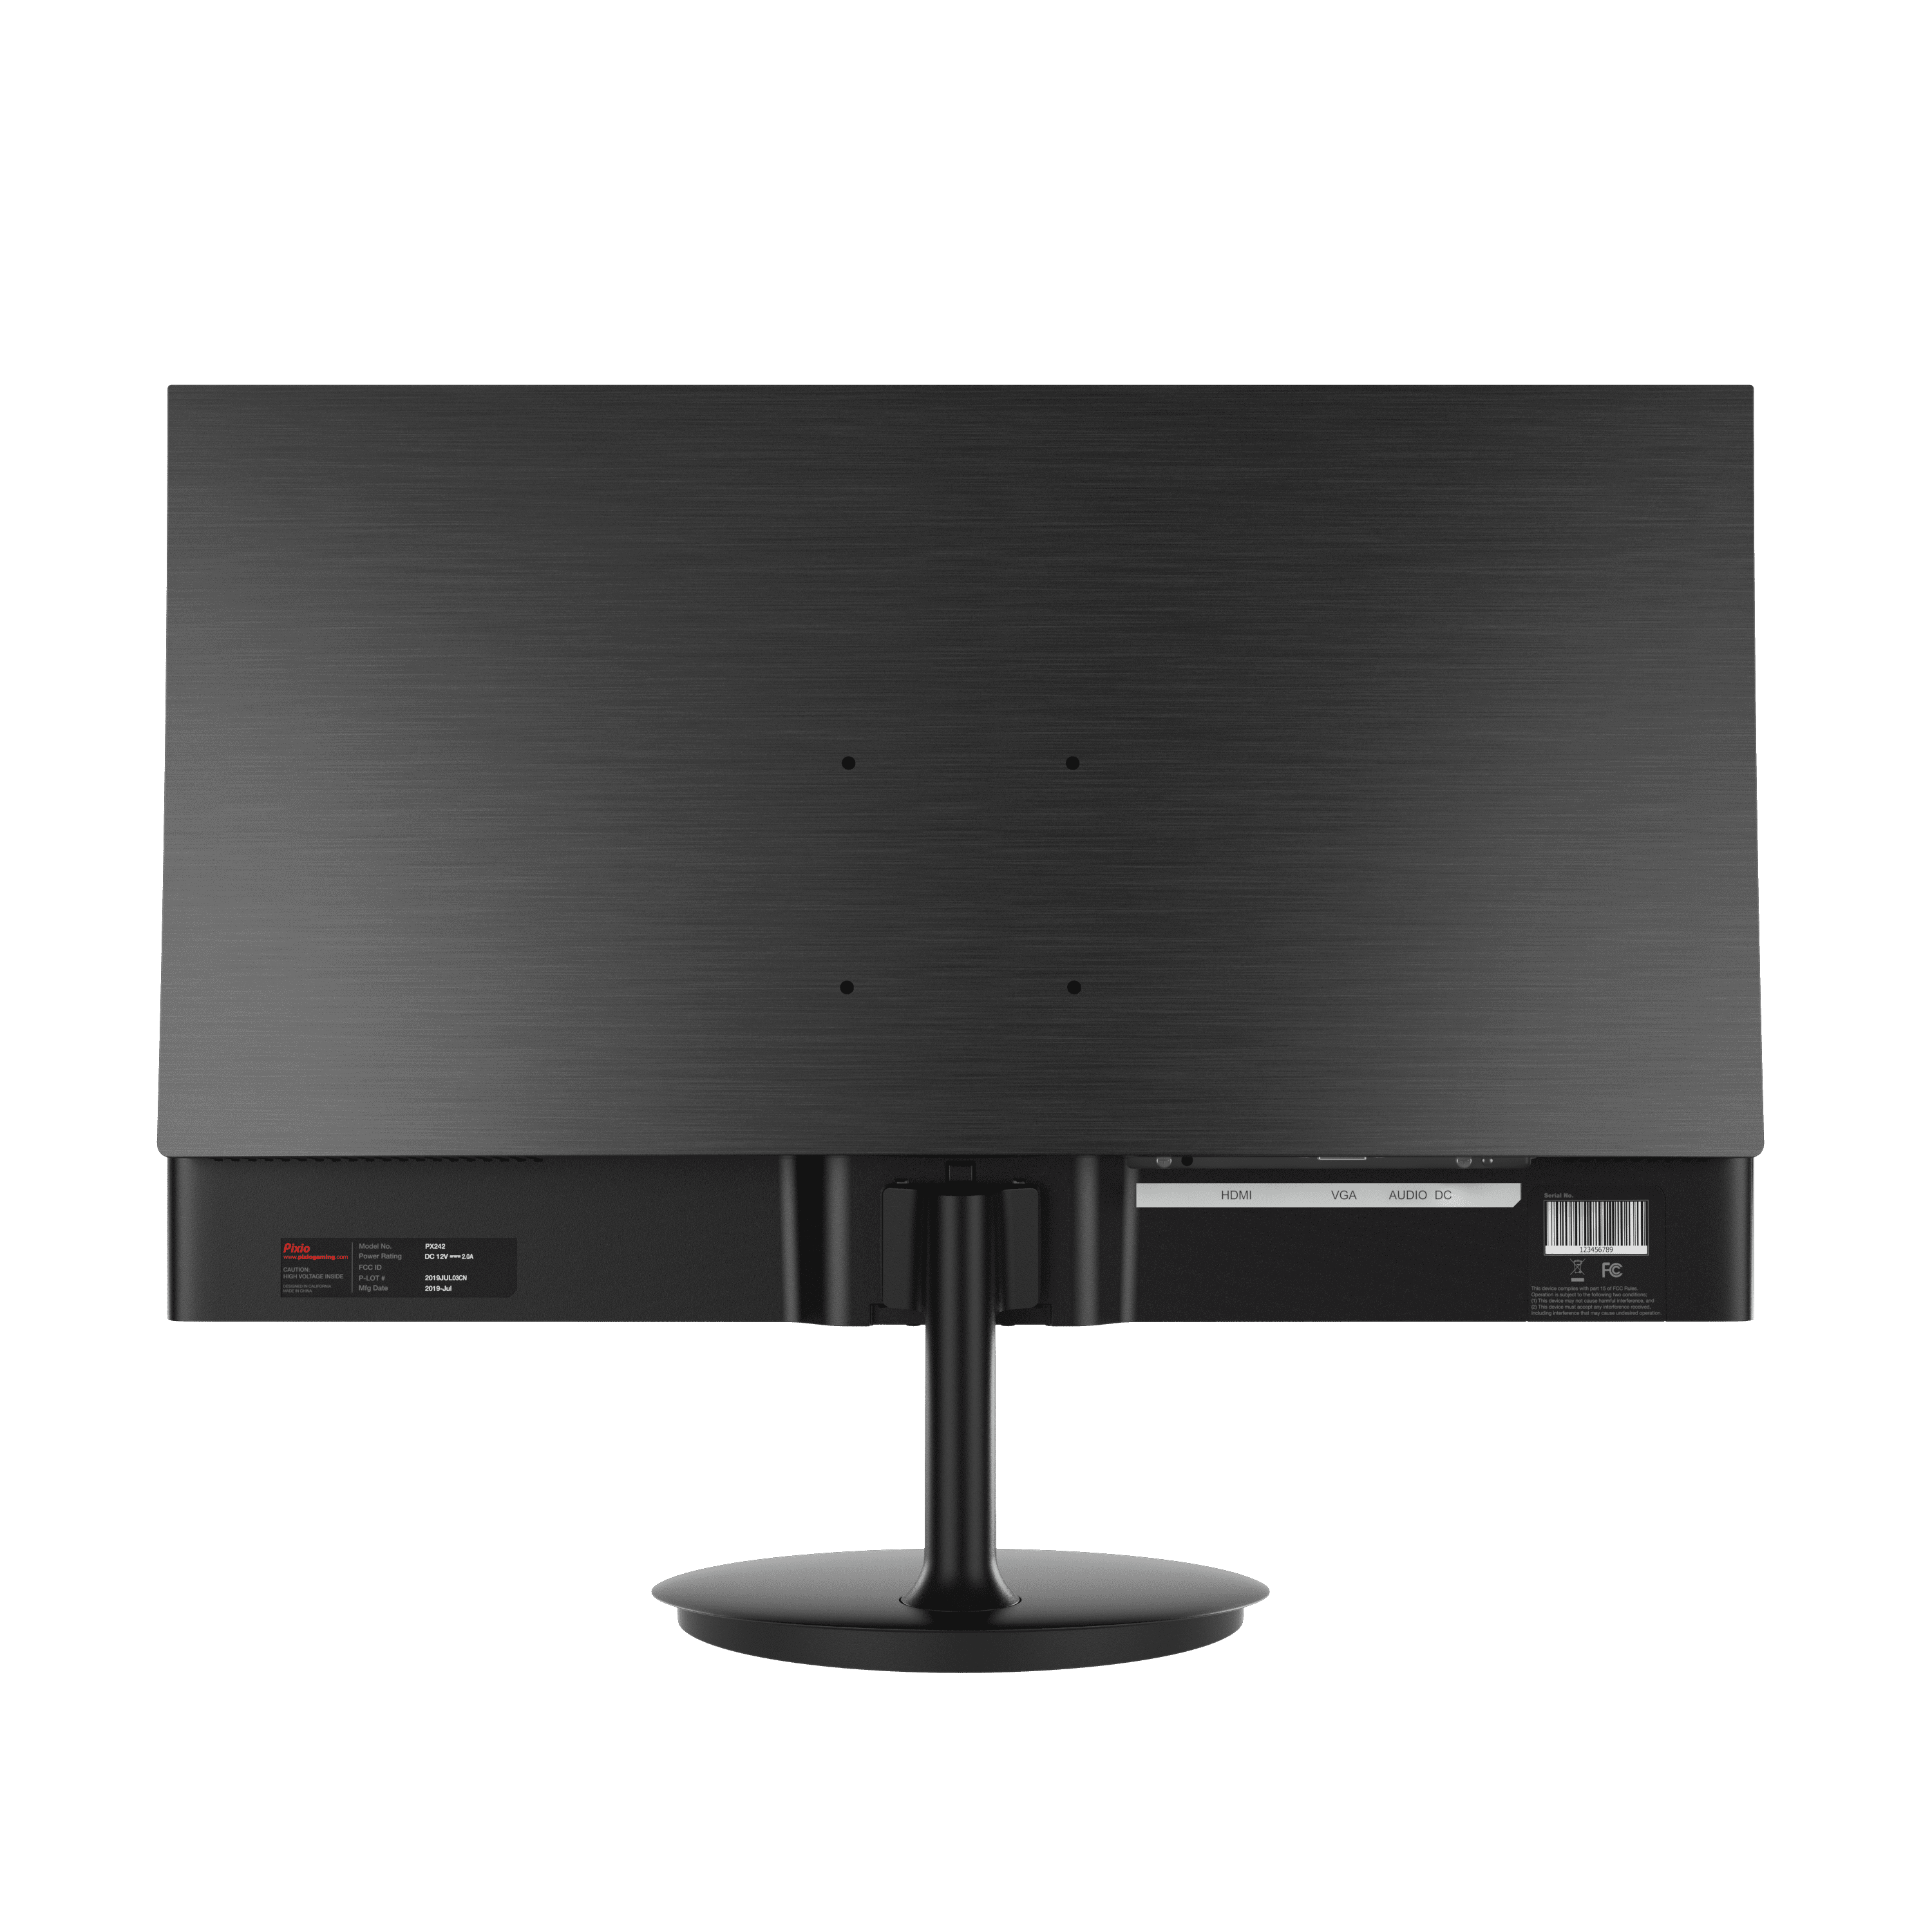 Pixio-24inch-monitor-PX242-Rear